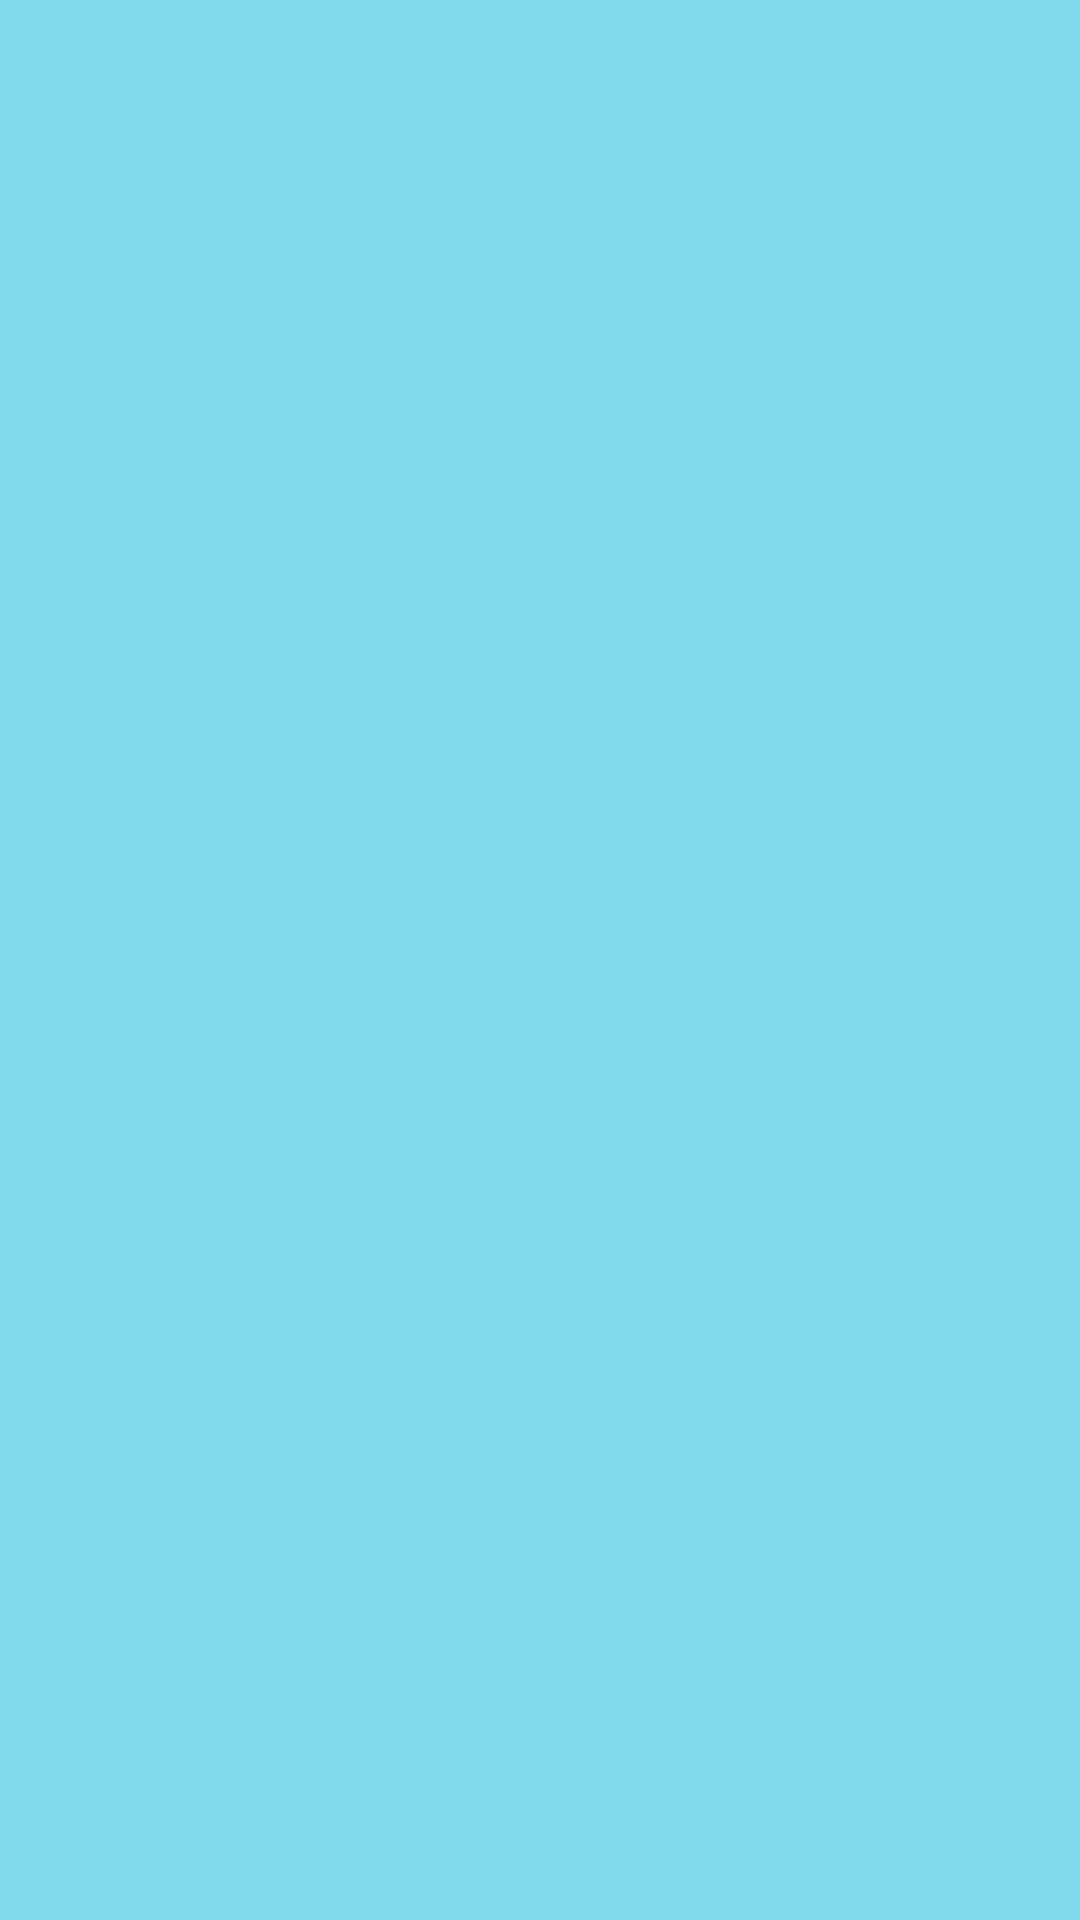 1080x1920 Medium Sky Blue Solid Color Background